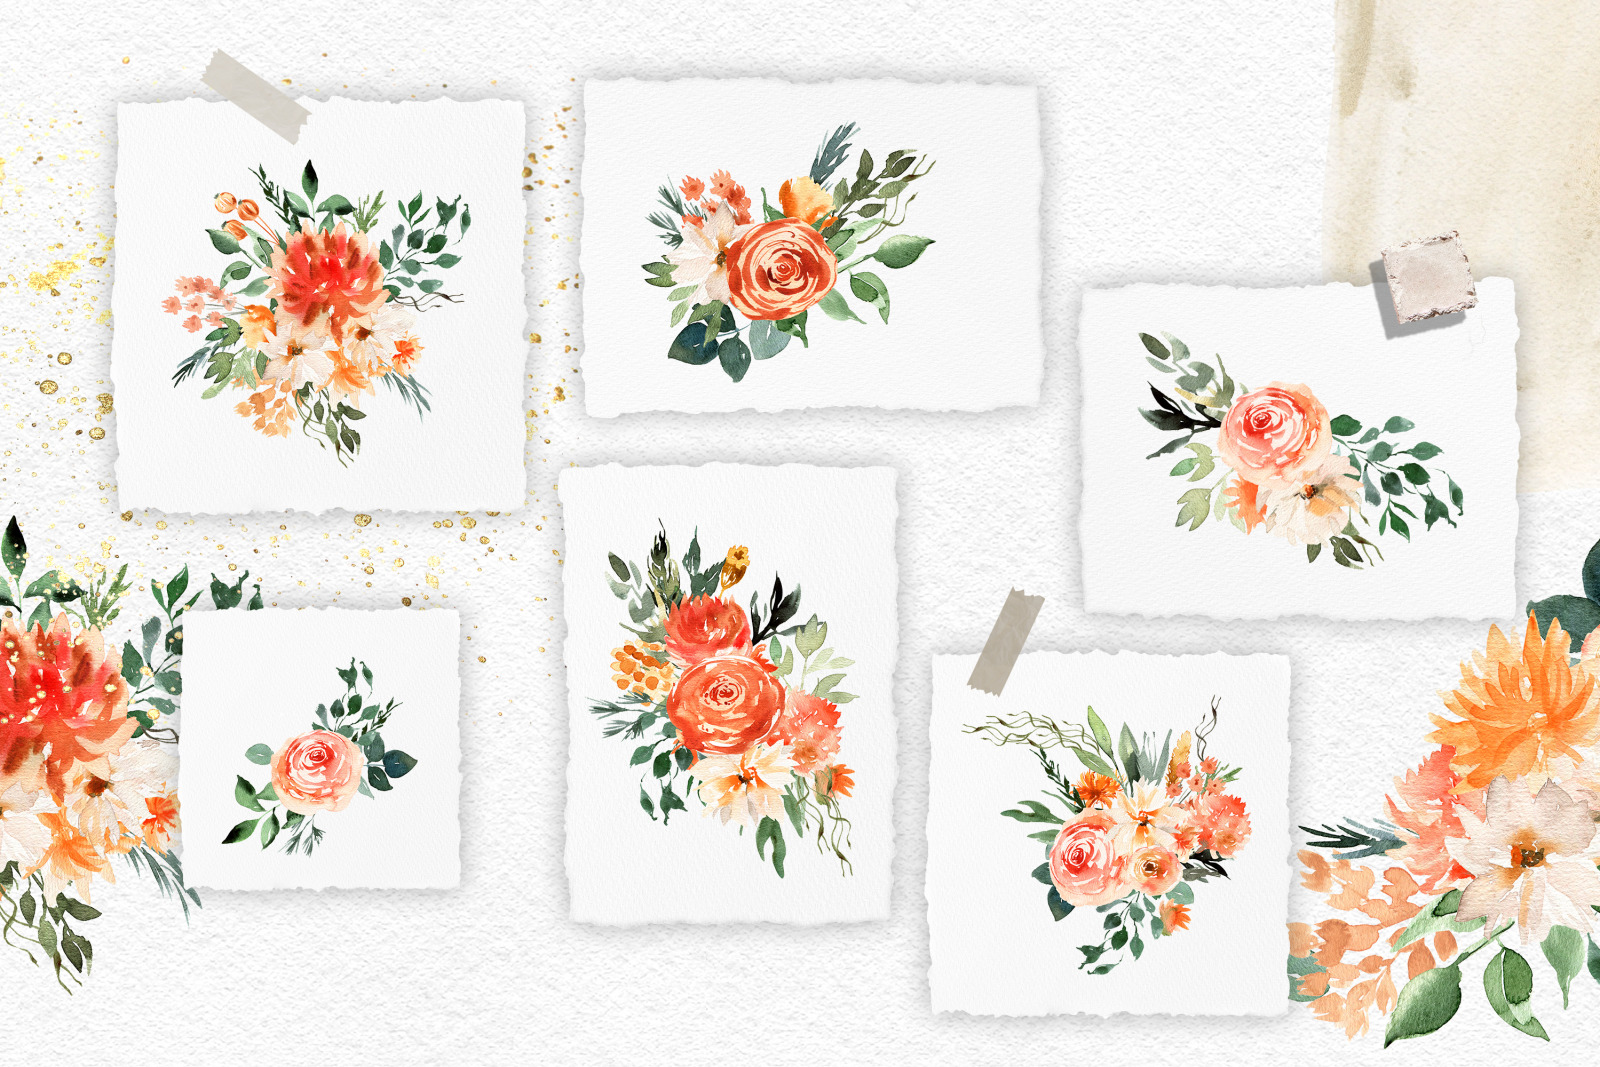 Abstract watercolor floral clipart. Boho roses clipart. Peach floral digital clipart Floral bouquet